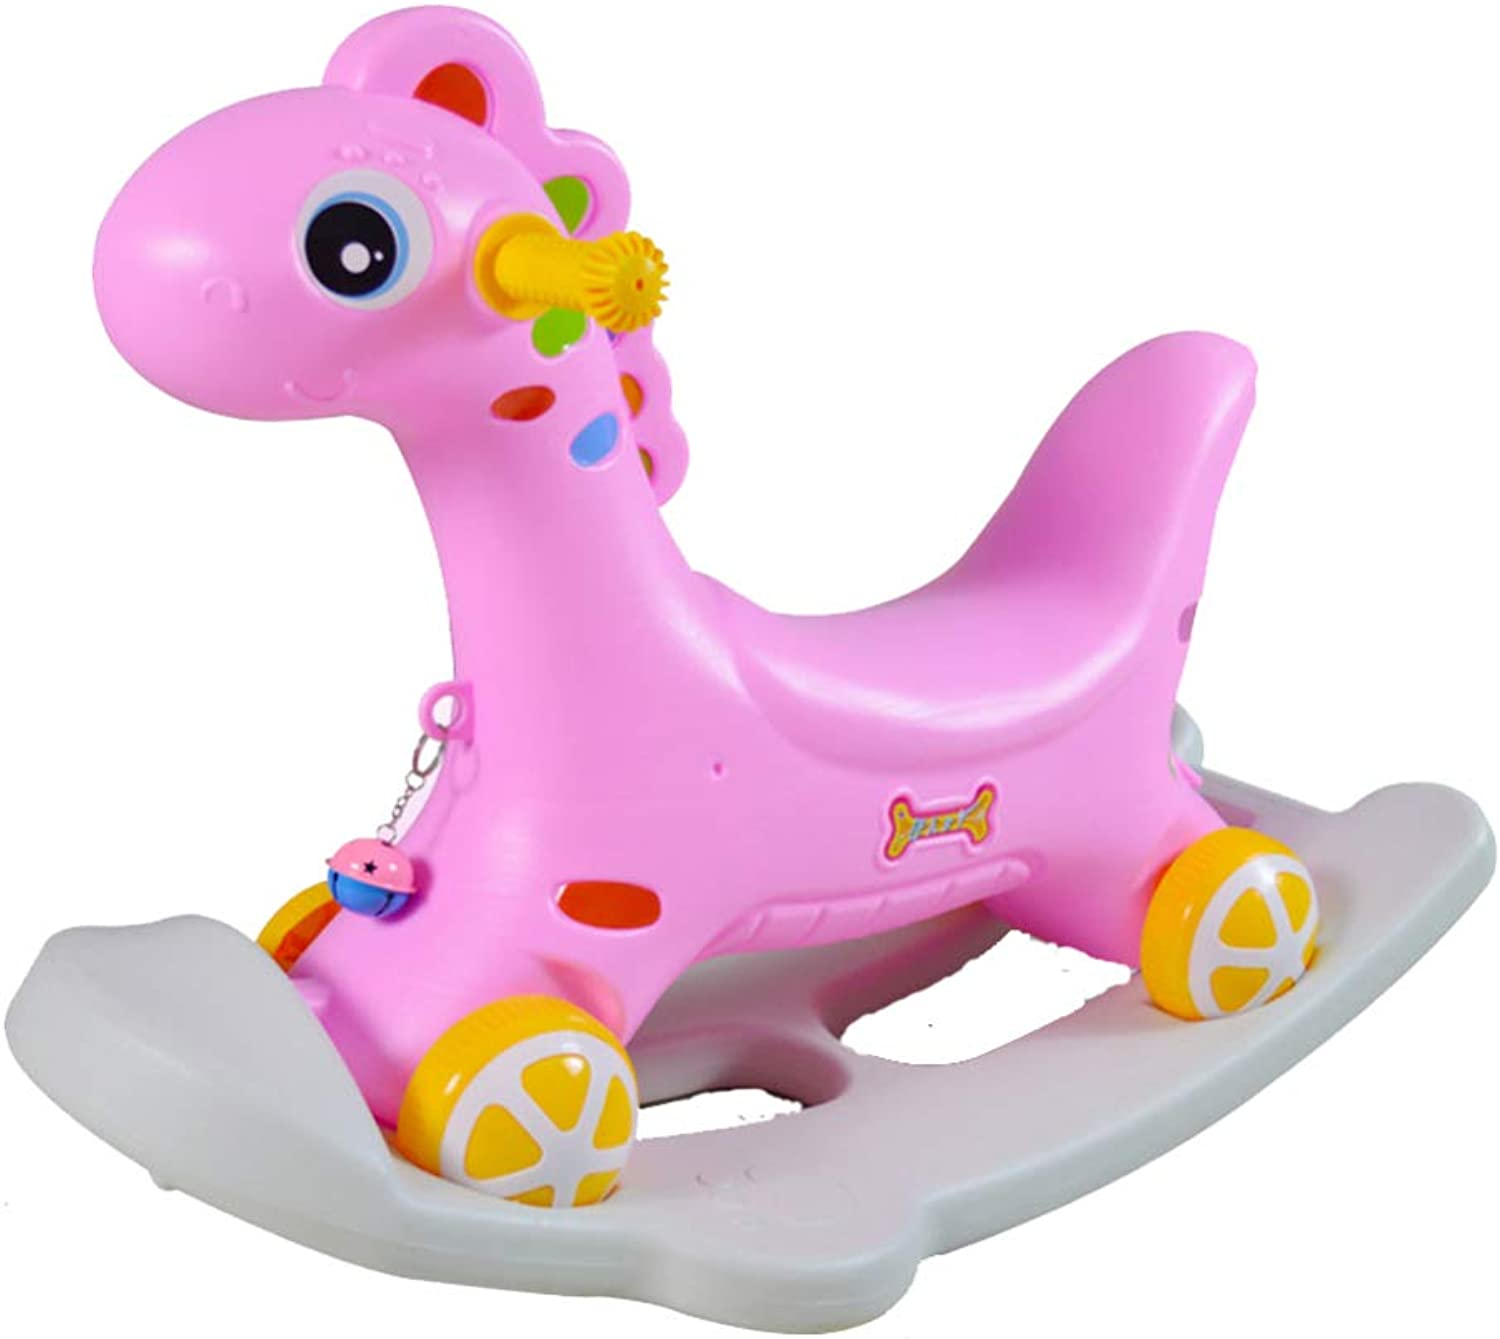 Rocking Horse,1-3 Years Old Baby Rocking Horse,Garden Rocking Horse,Indoor-Outdoor Rocking Horse Toy,Pink